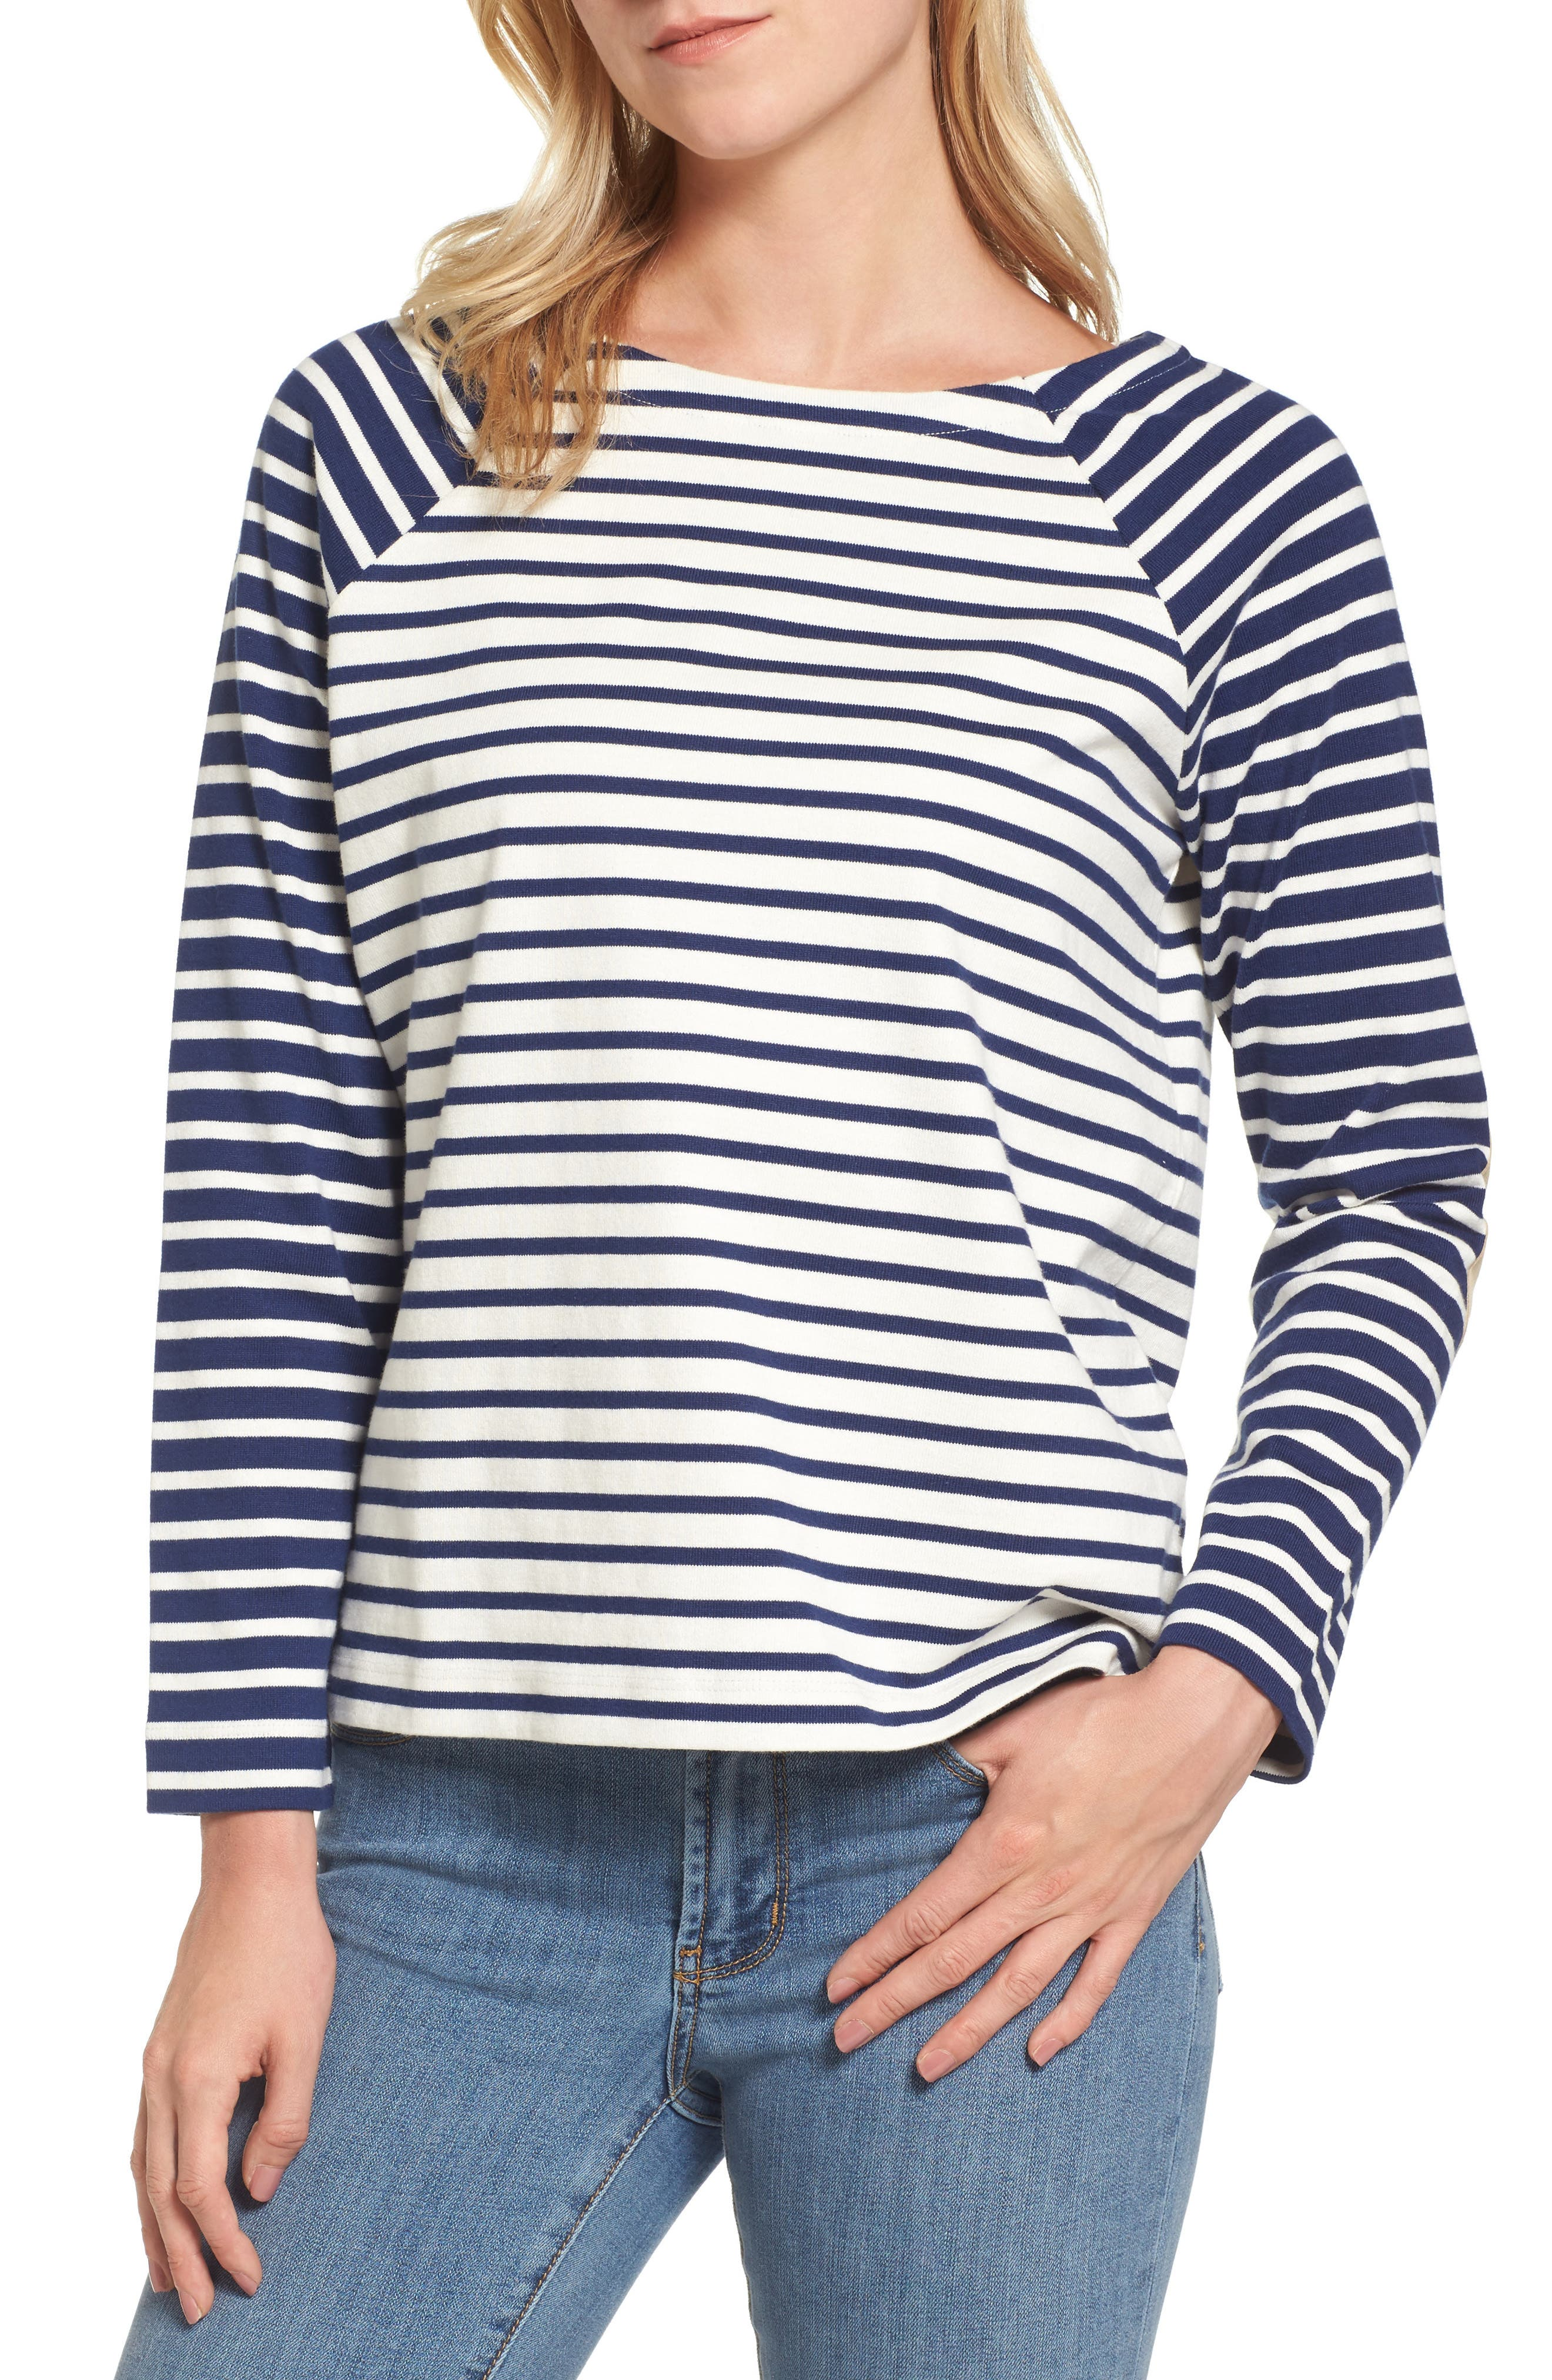 Alternate Image 1 Selected - vineyard vines Elbow Patch Mixed Stripe Top